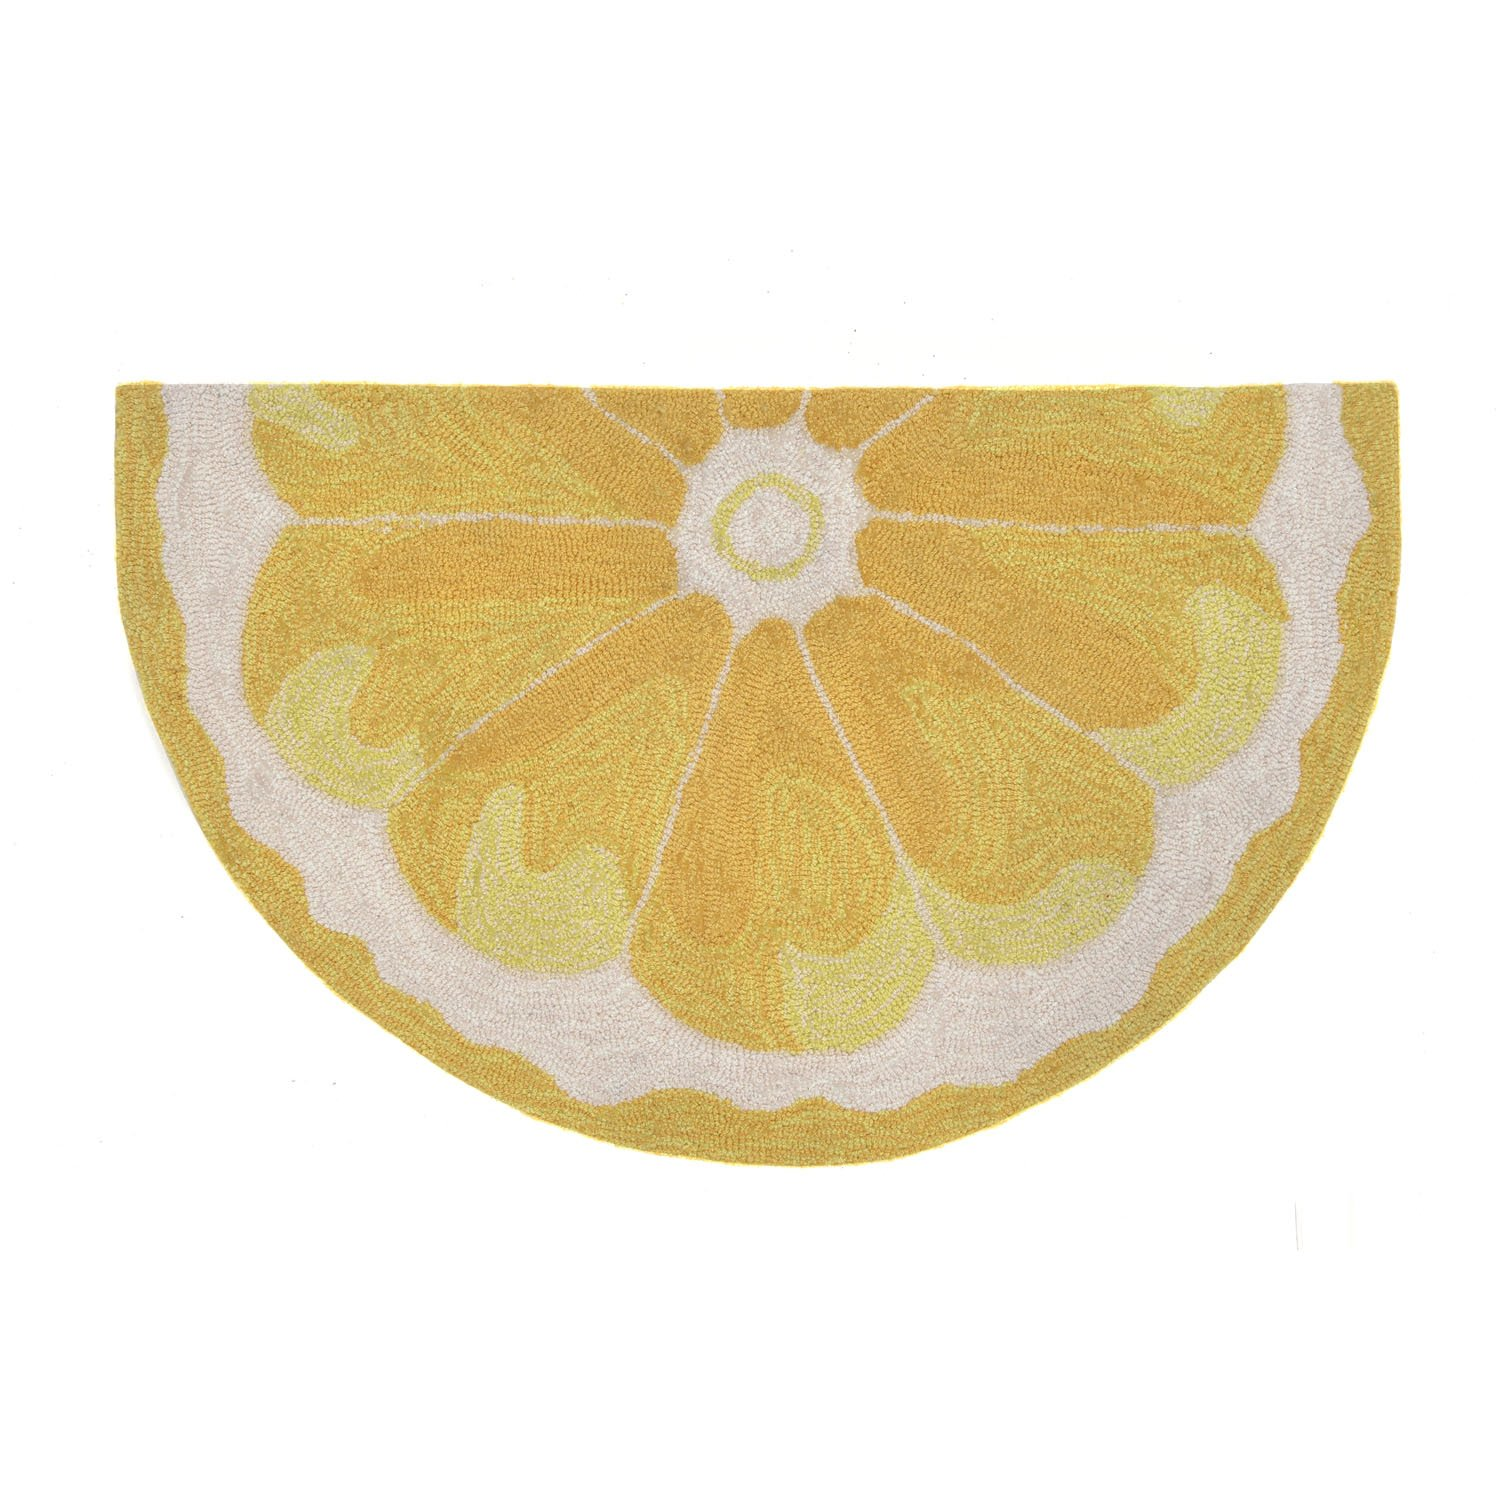 Liora Manne FT1H1A54209 Sour Rug, 20x 30 1/2 Round, Yellow 20x 30 1/2 Round The Trans Ocean Group